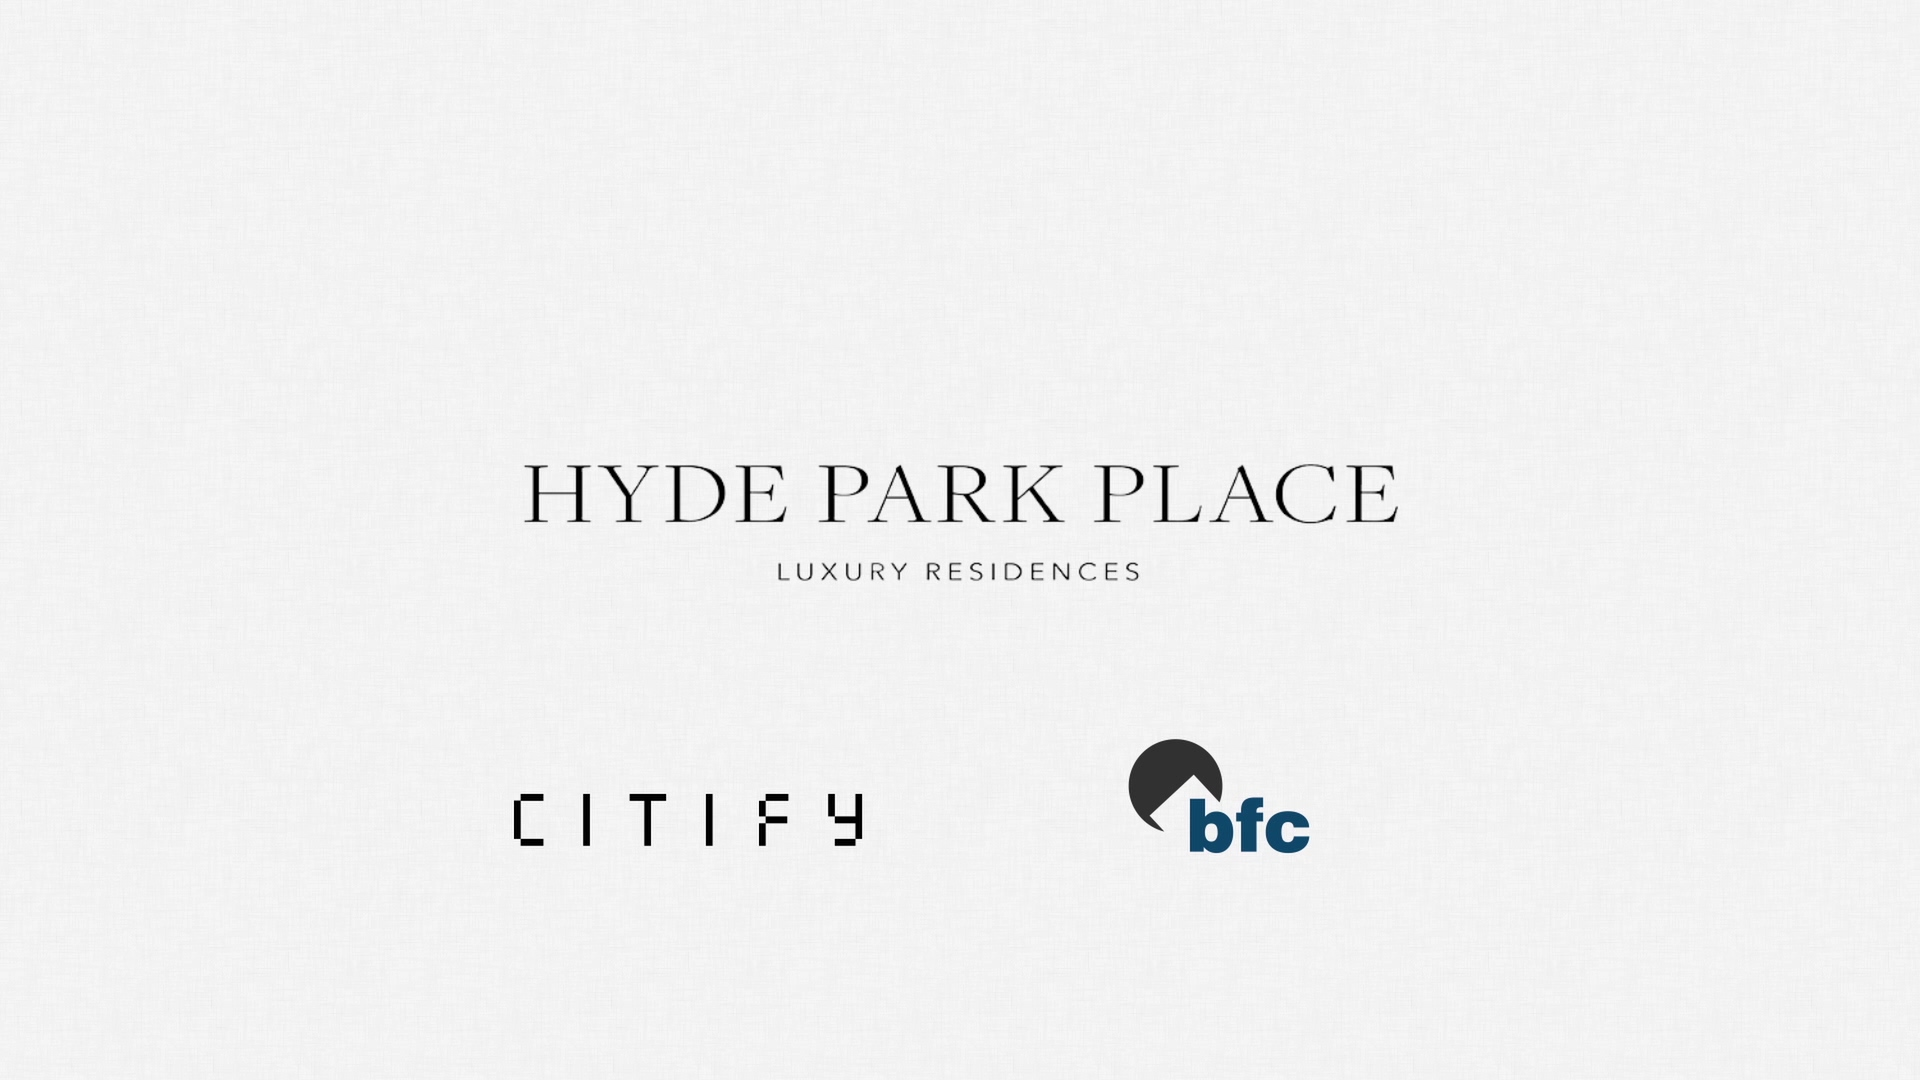 Citify - Hyde Park - October 2020